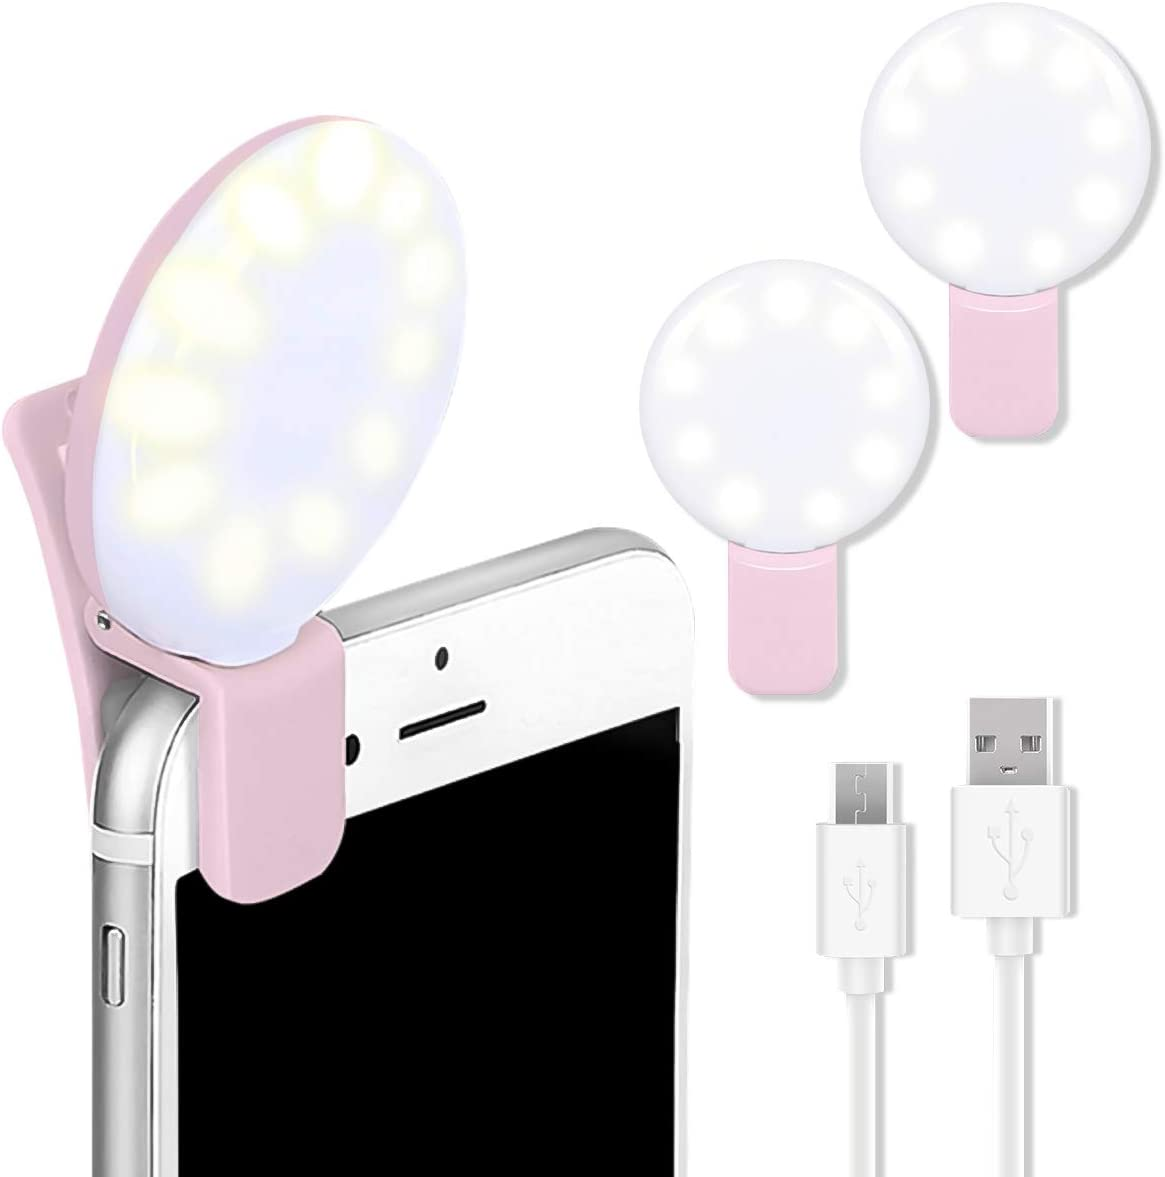 CameCosy 2PCS Small Selfie Ring Light for Laptop,Rechargeable Portable Clip on Phone,Adjustable Brightness for Video conferencing/Live Stream/YouTube, Compatible with iPhone/Android.(Pink+Pink)